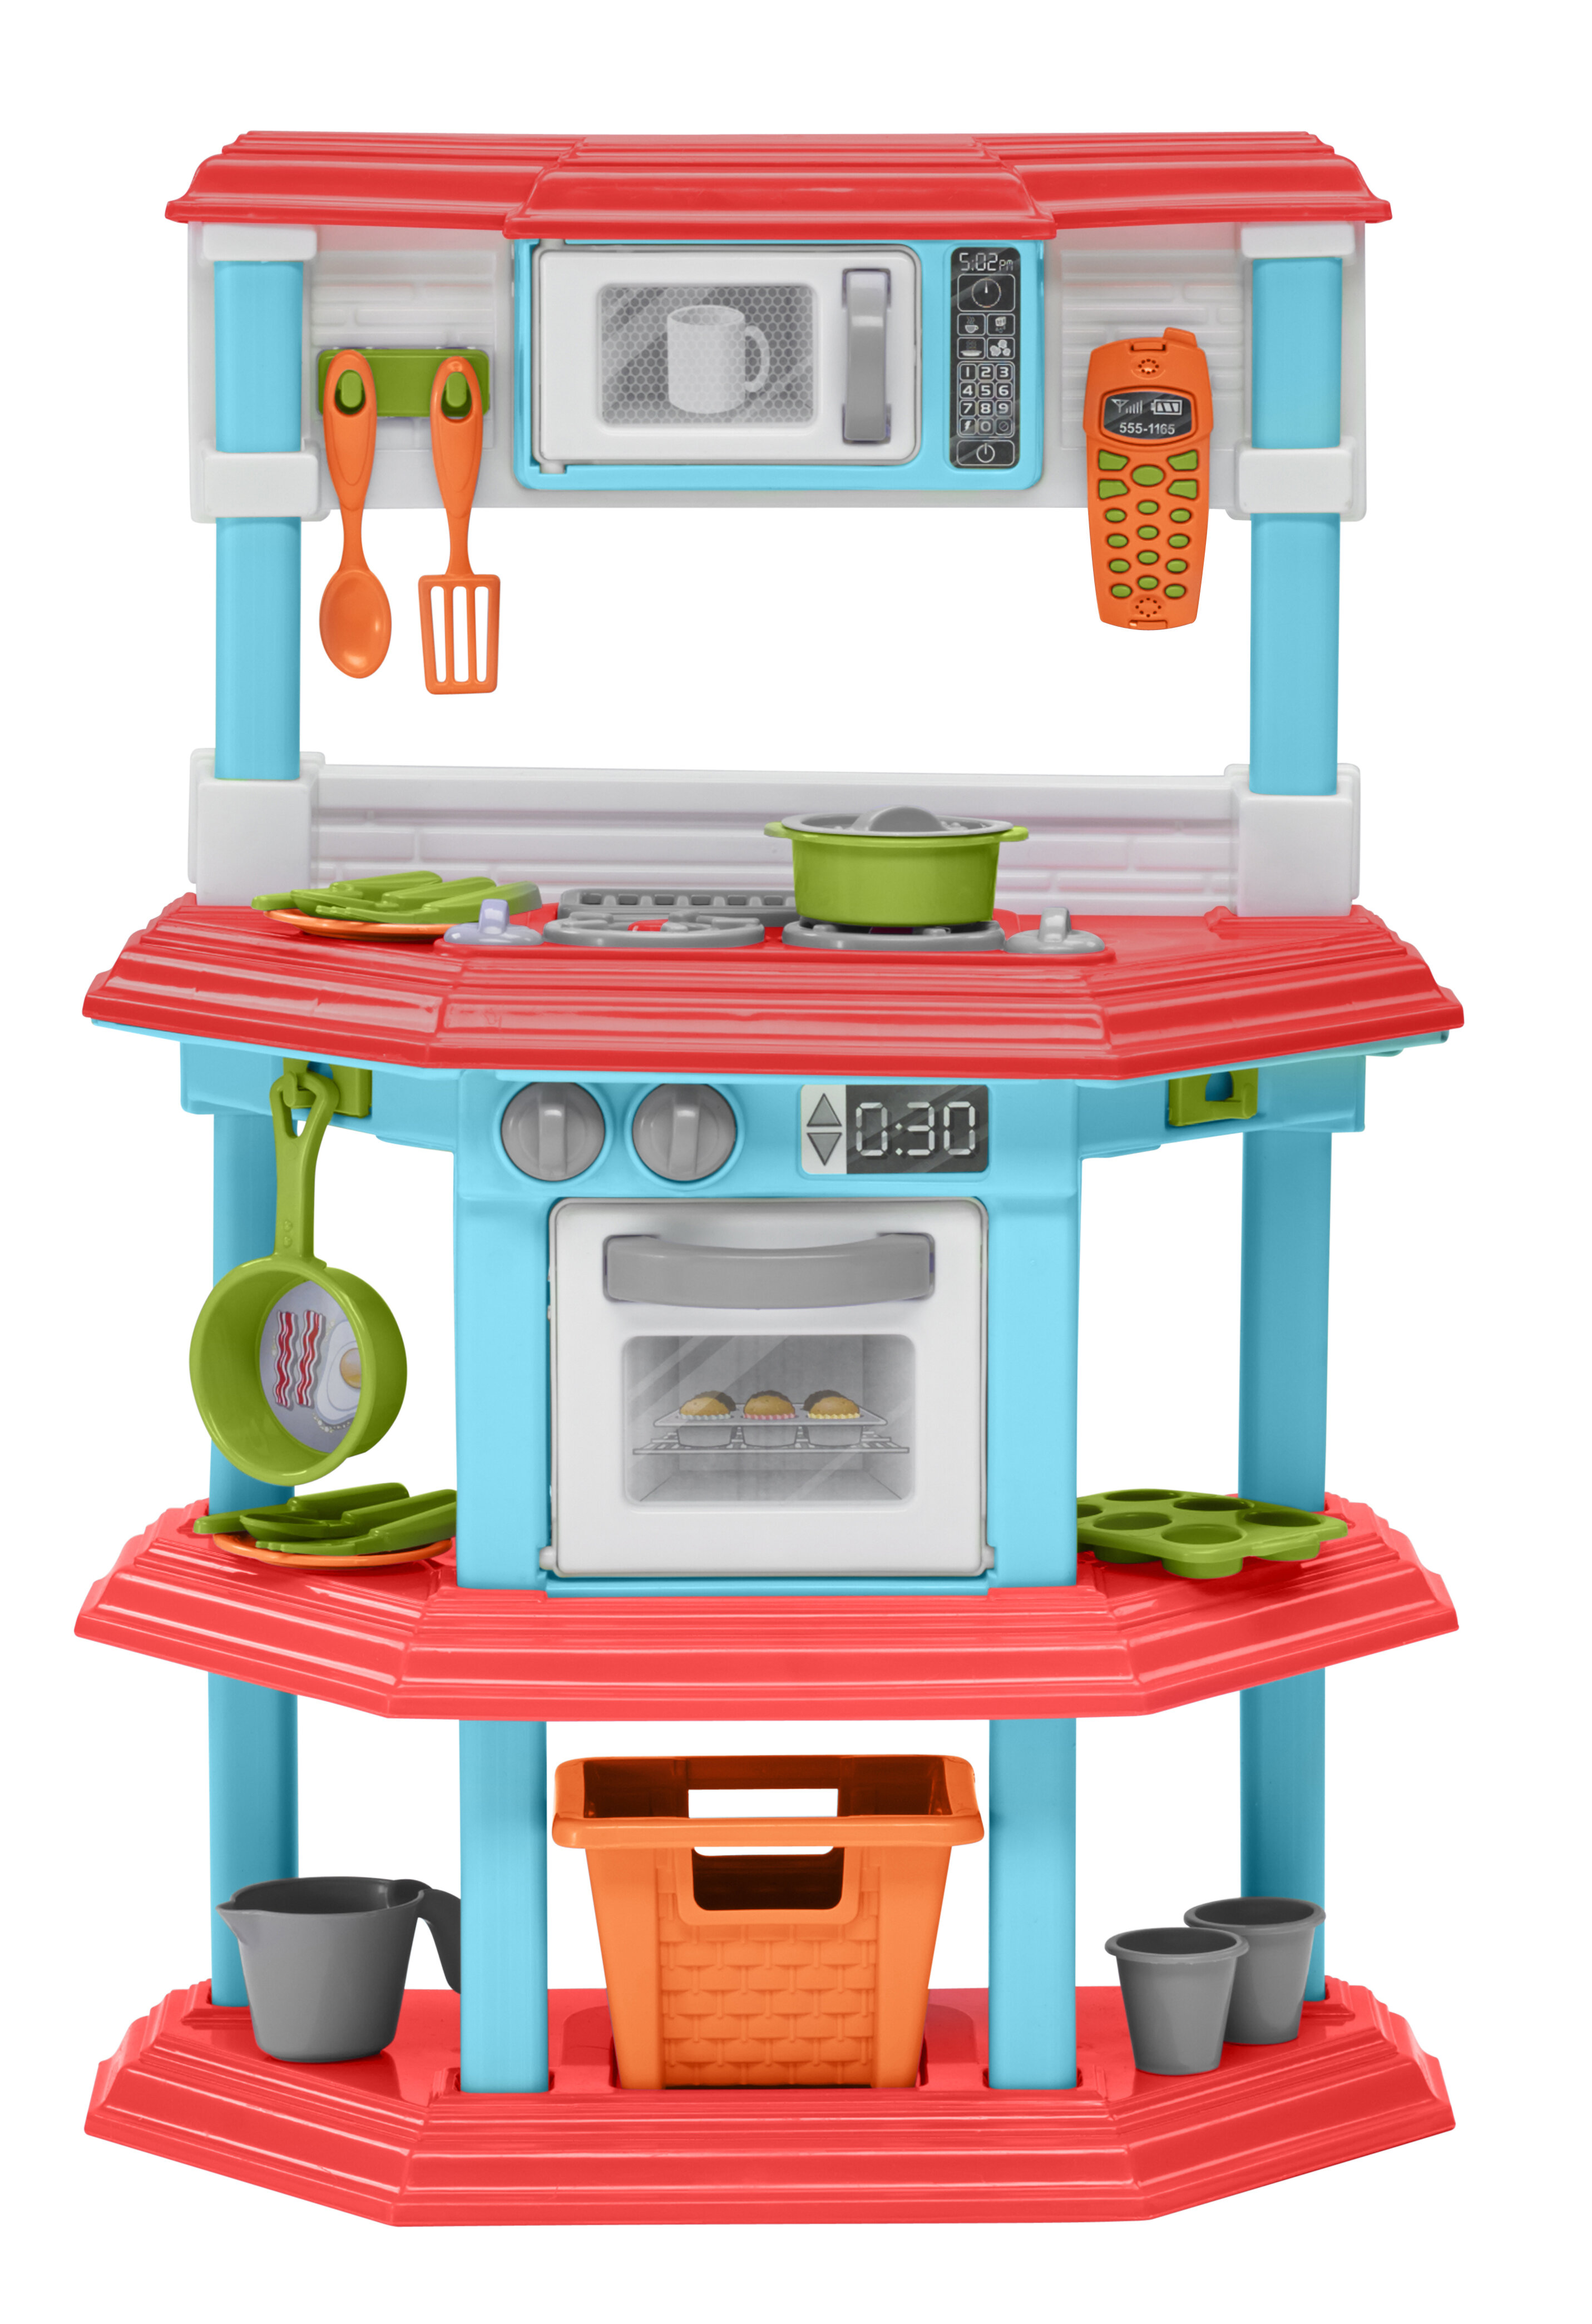 American Plastic Toys 23 Piece My Very Own Gourmet Kitchen Set Reviews Wayfair